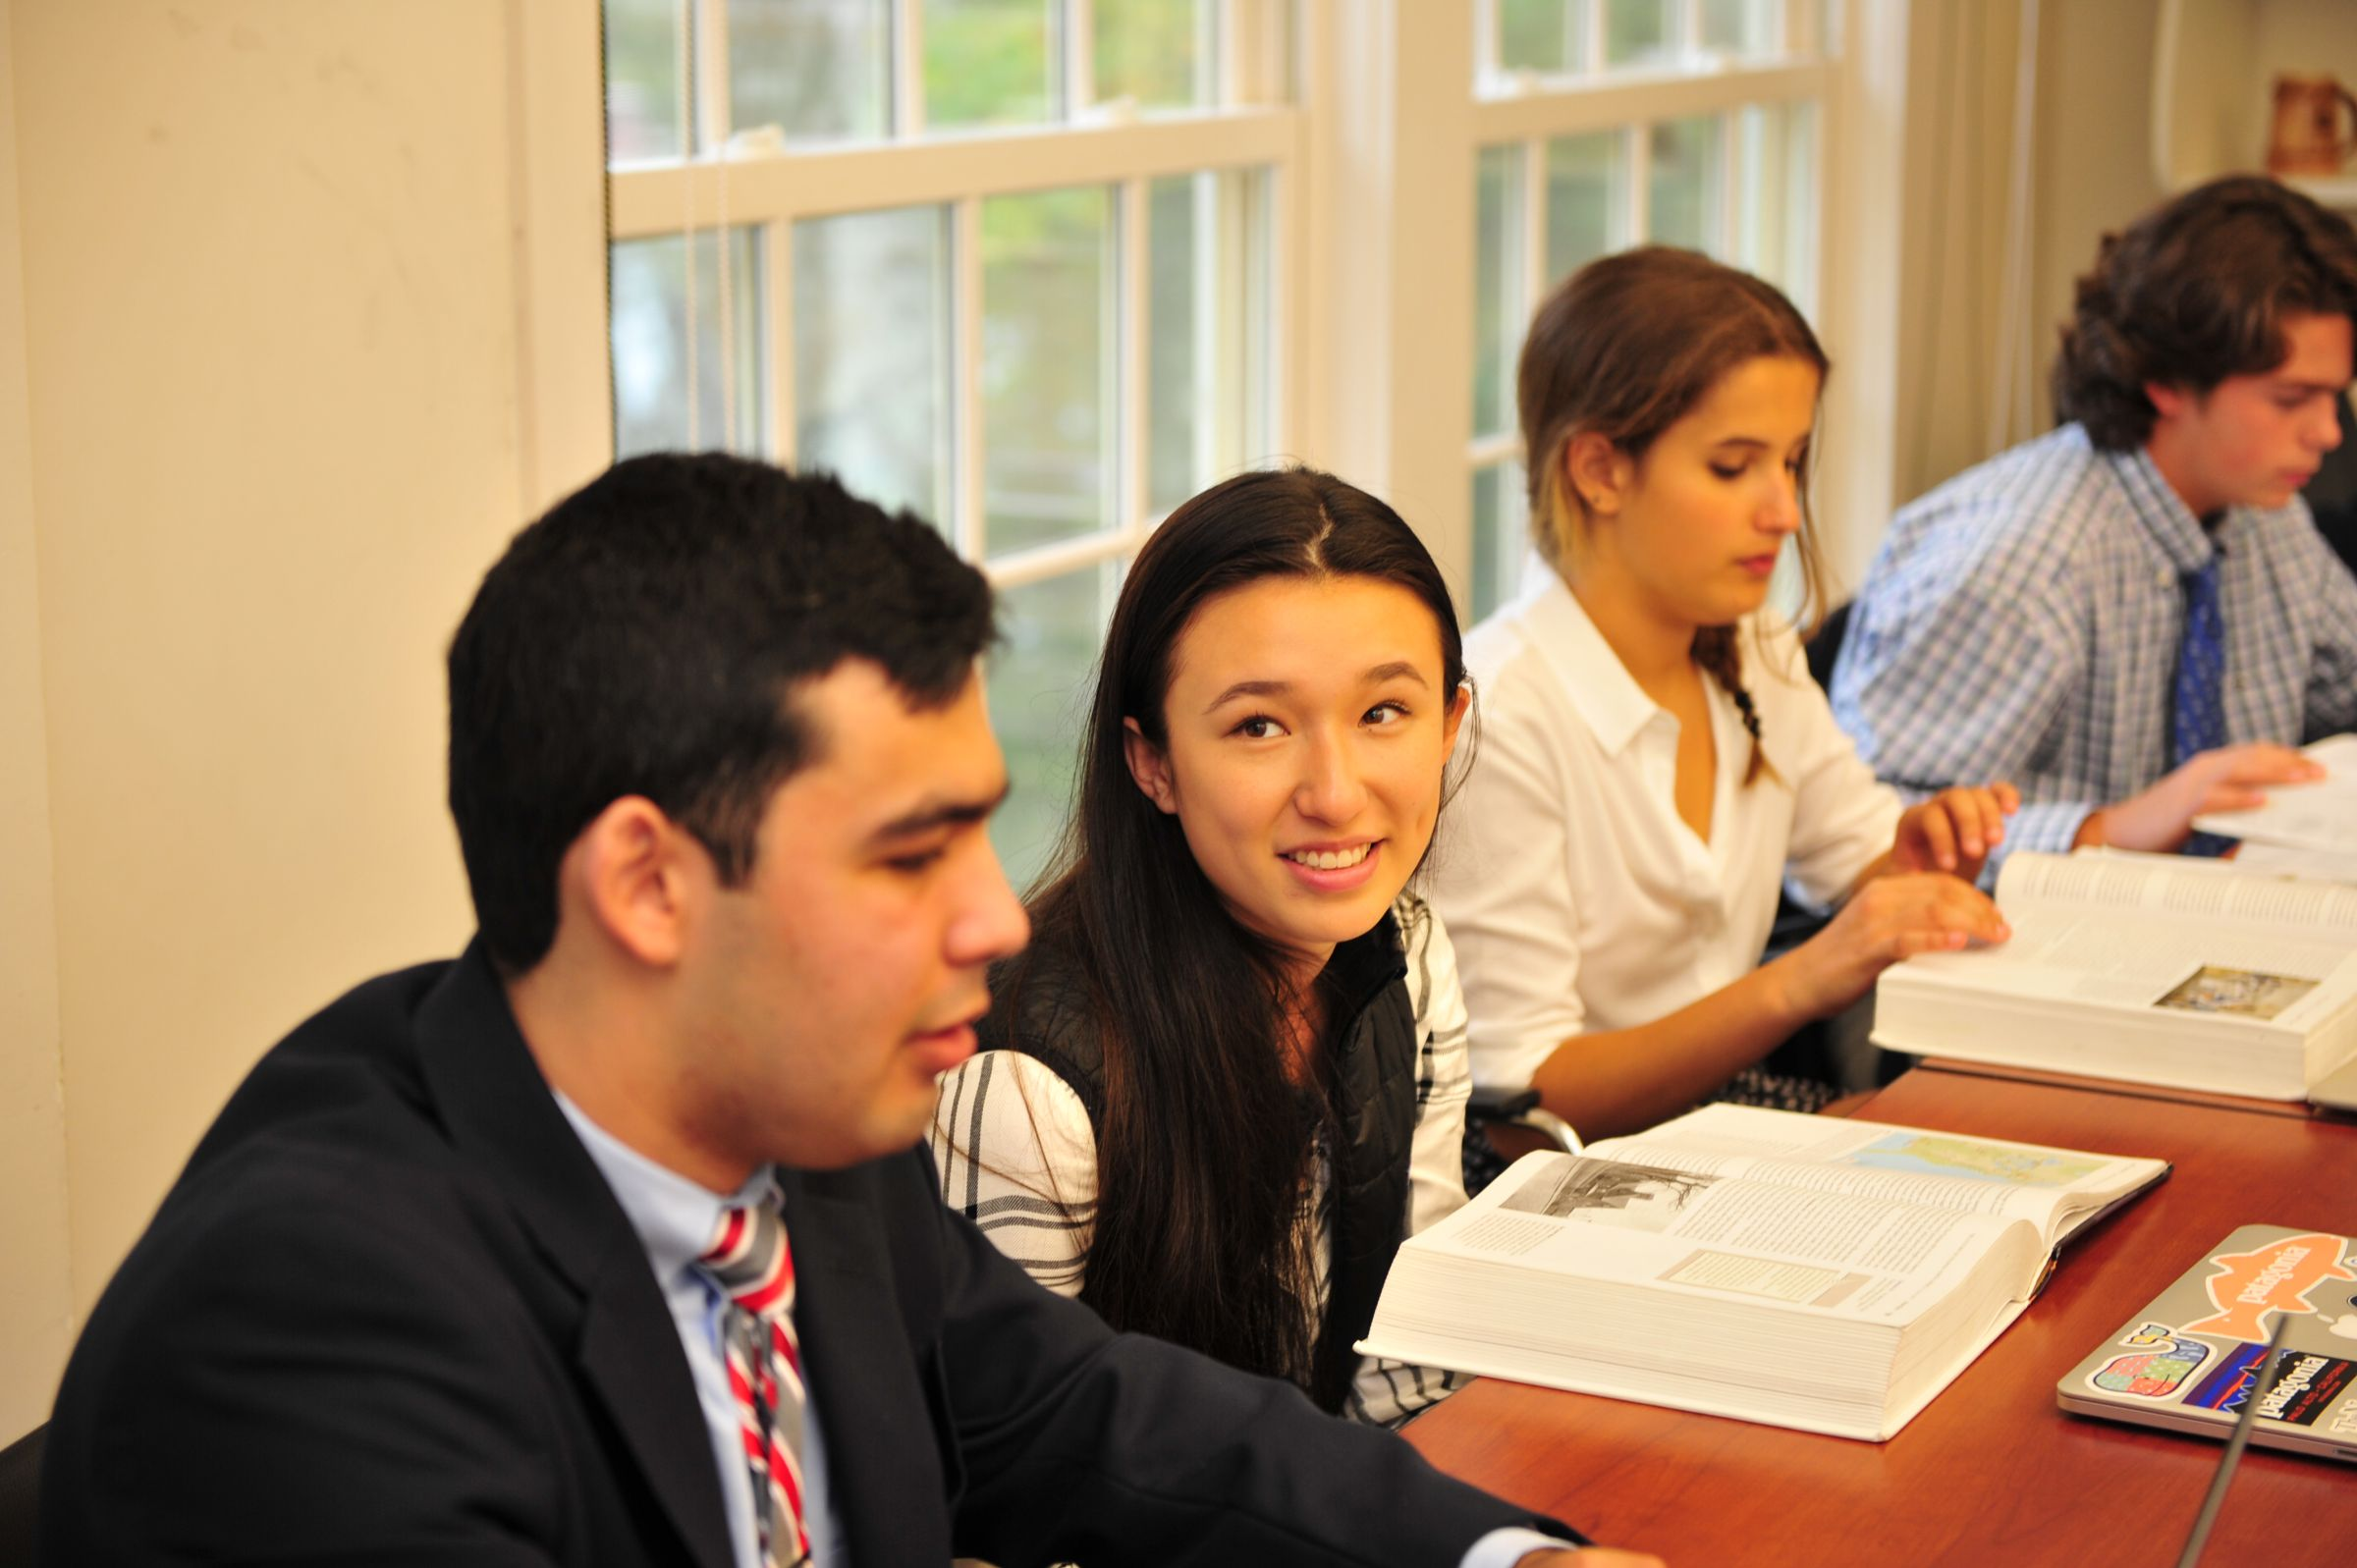 Hear what our students and faculty have to say about The Gunnery